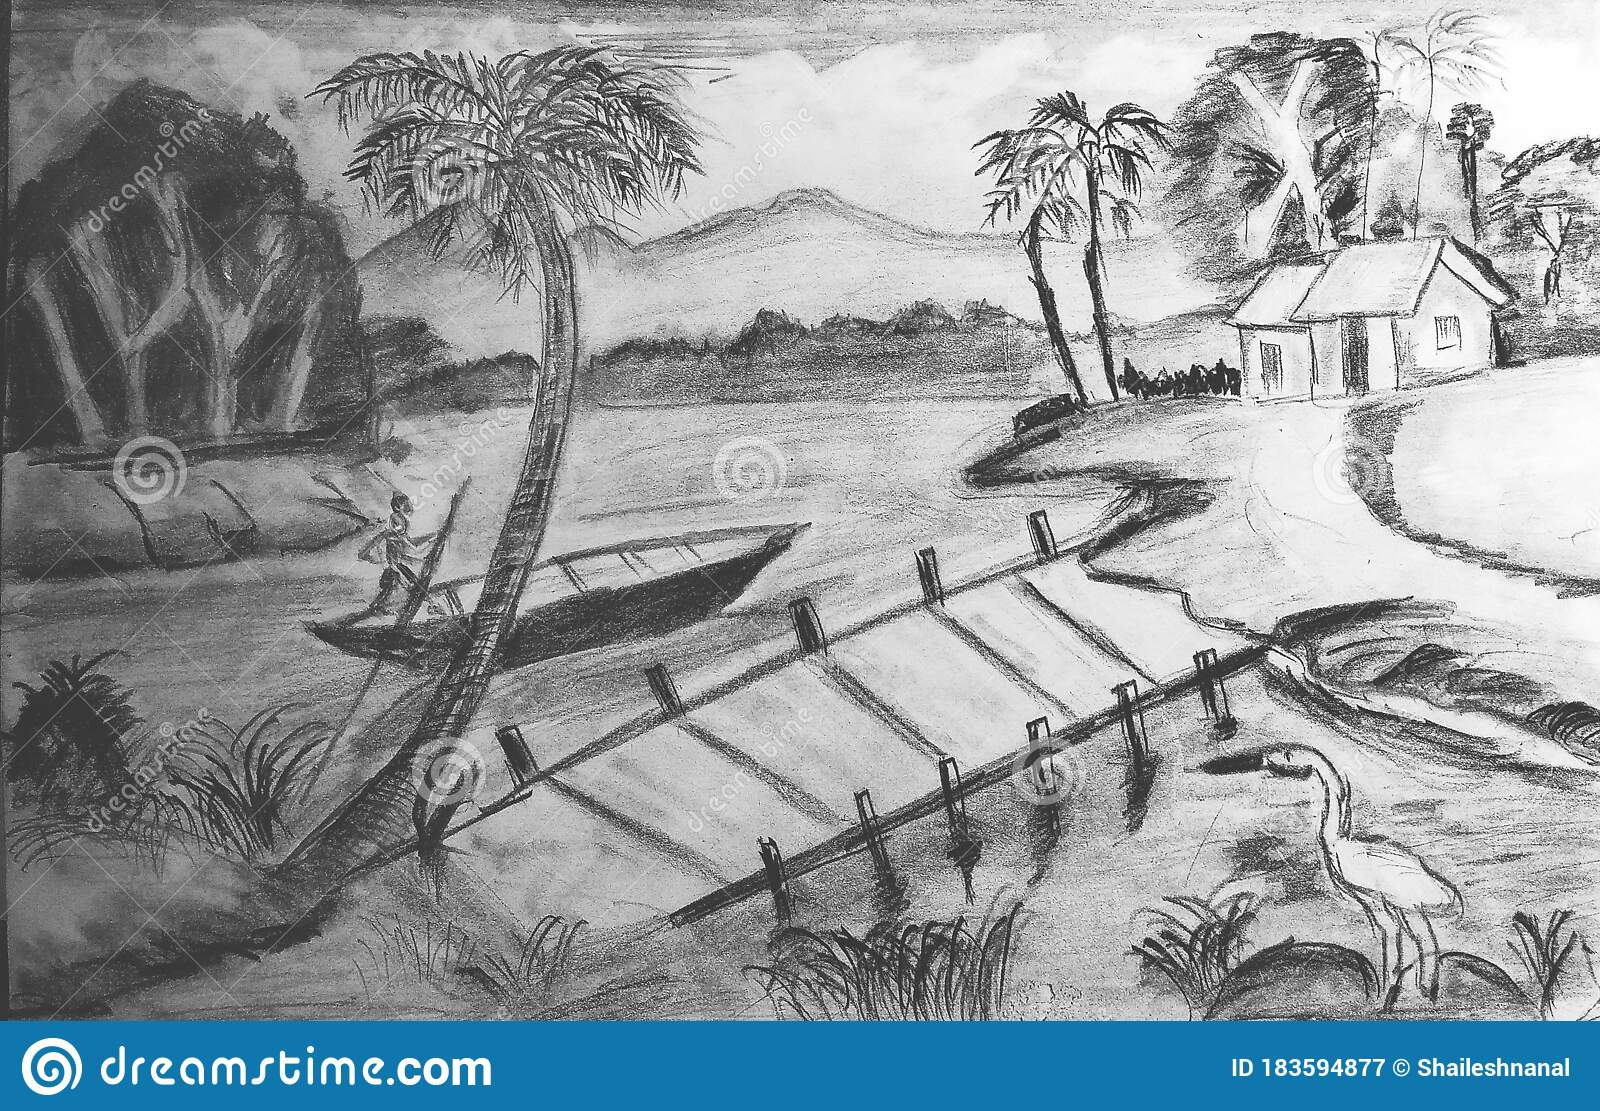 5 524 Indian Village Scenery Photos Free Royalty Free Stock Photos From Dreamstime Collection of scenery drawing images. dreamstime com